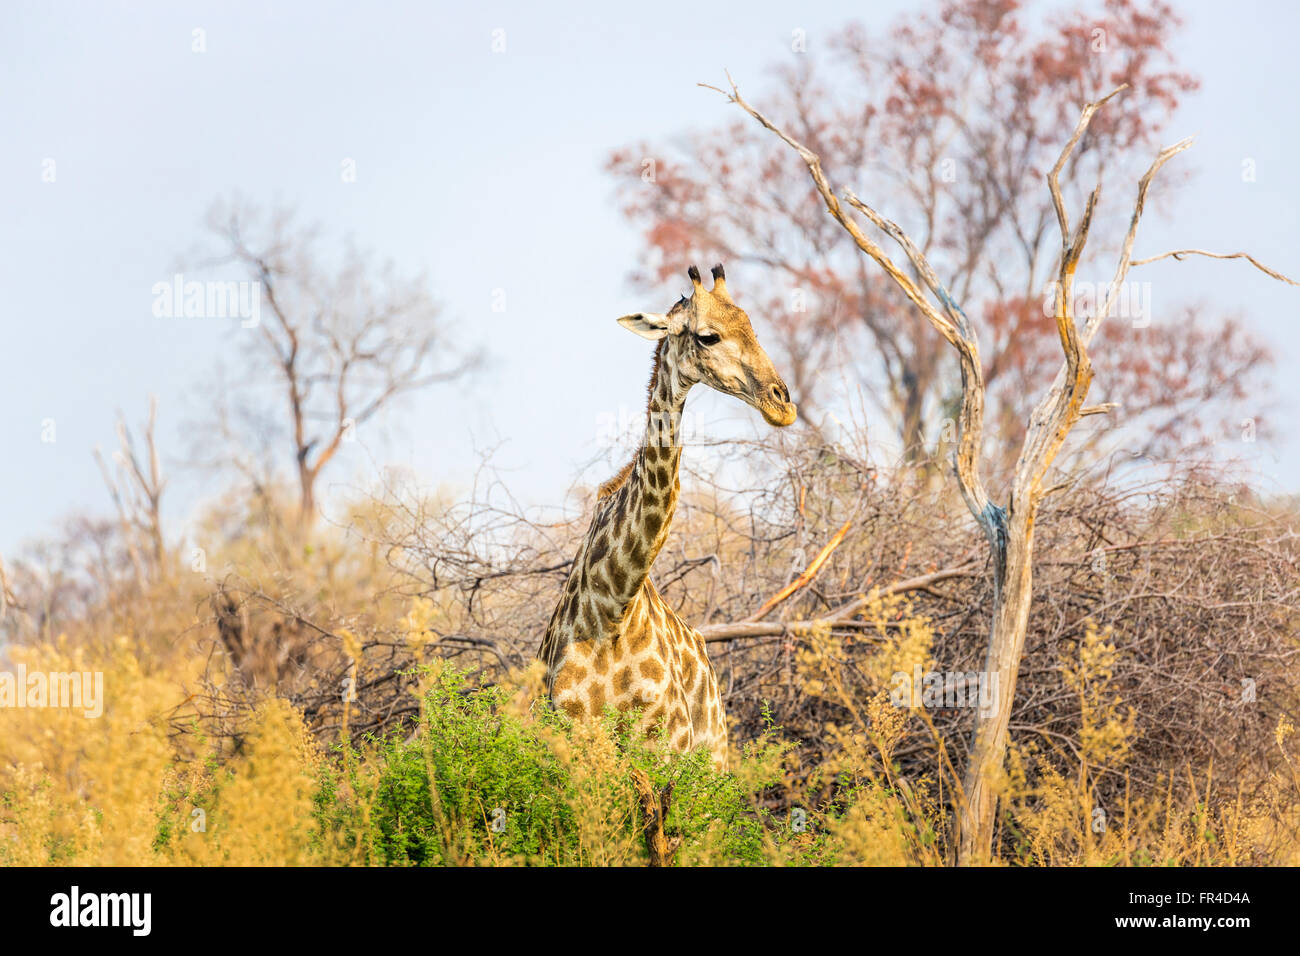 Southern giraffe (Giraffa camelopardalis) standing in woodland, Sandibe Camp, adjacent to the Moremi Game Reserve, - Stock Image